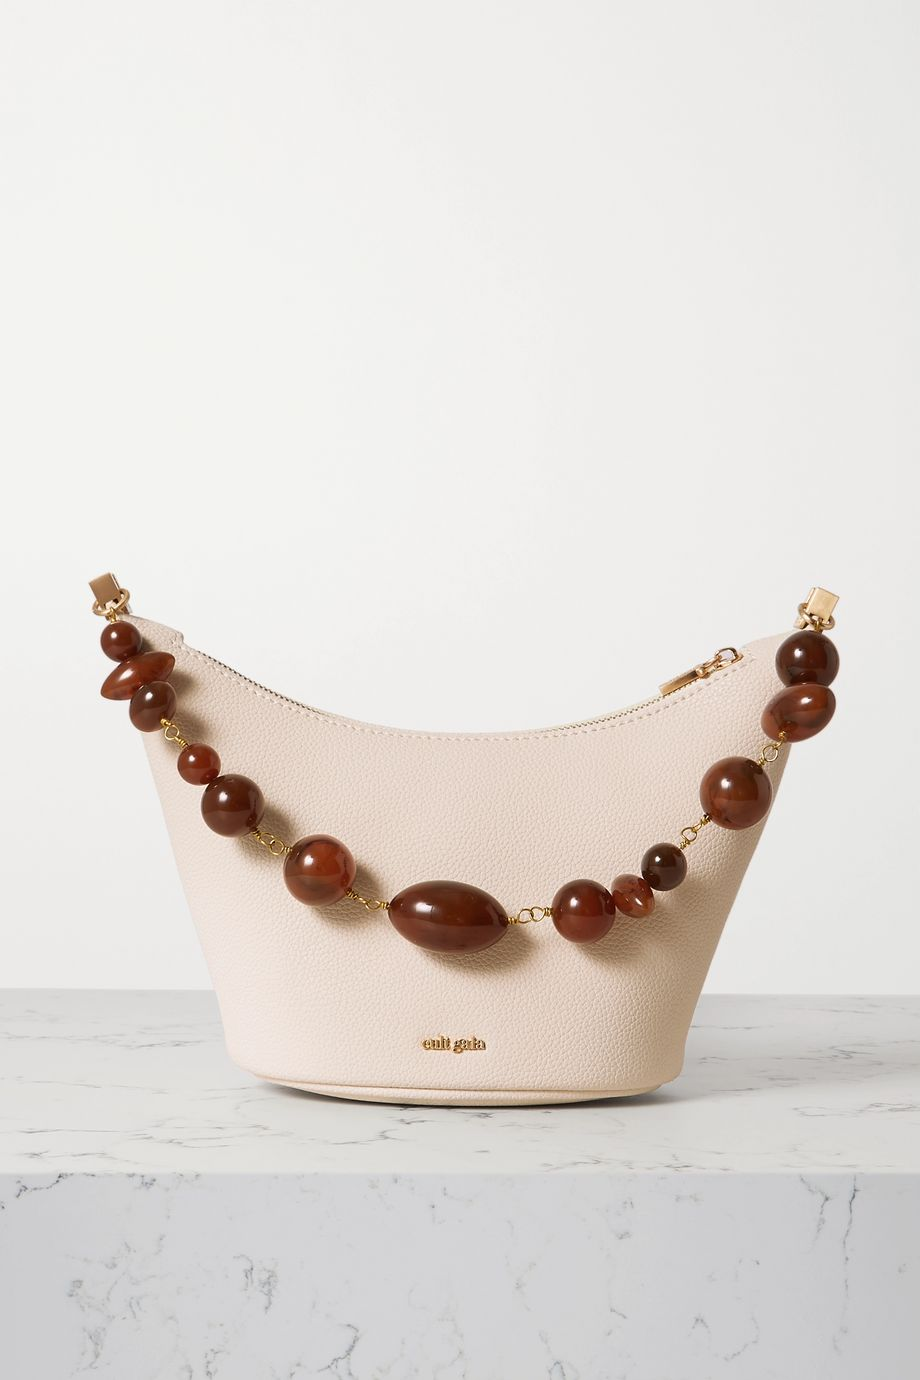 Cult Gaia Gia bead-embellished textured-leather shoulder bag